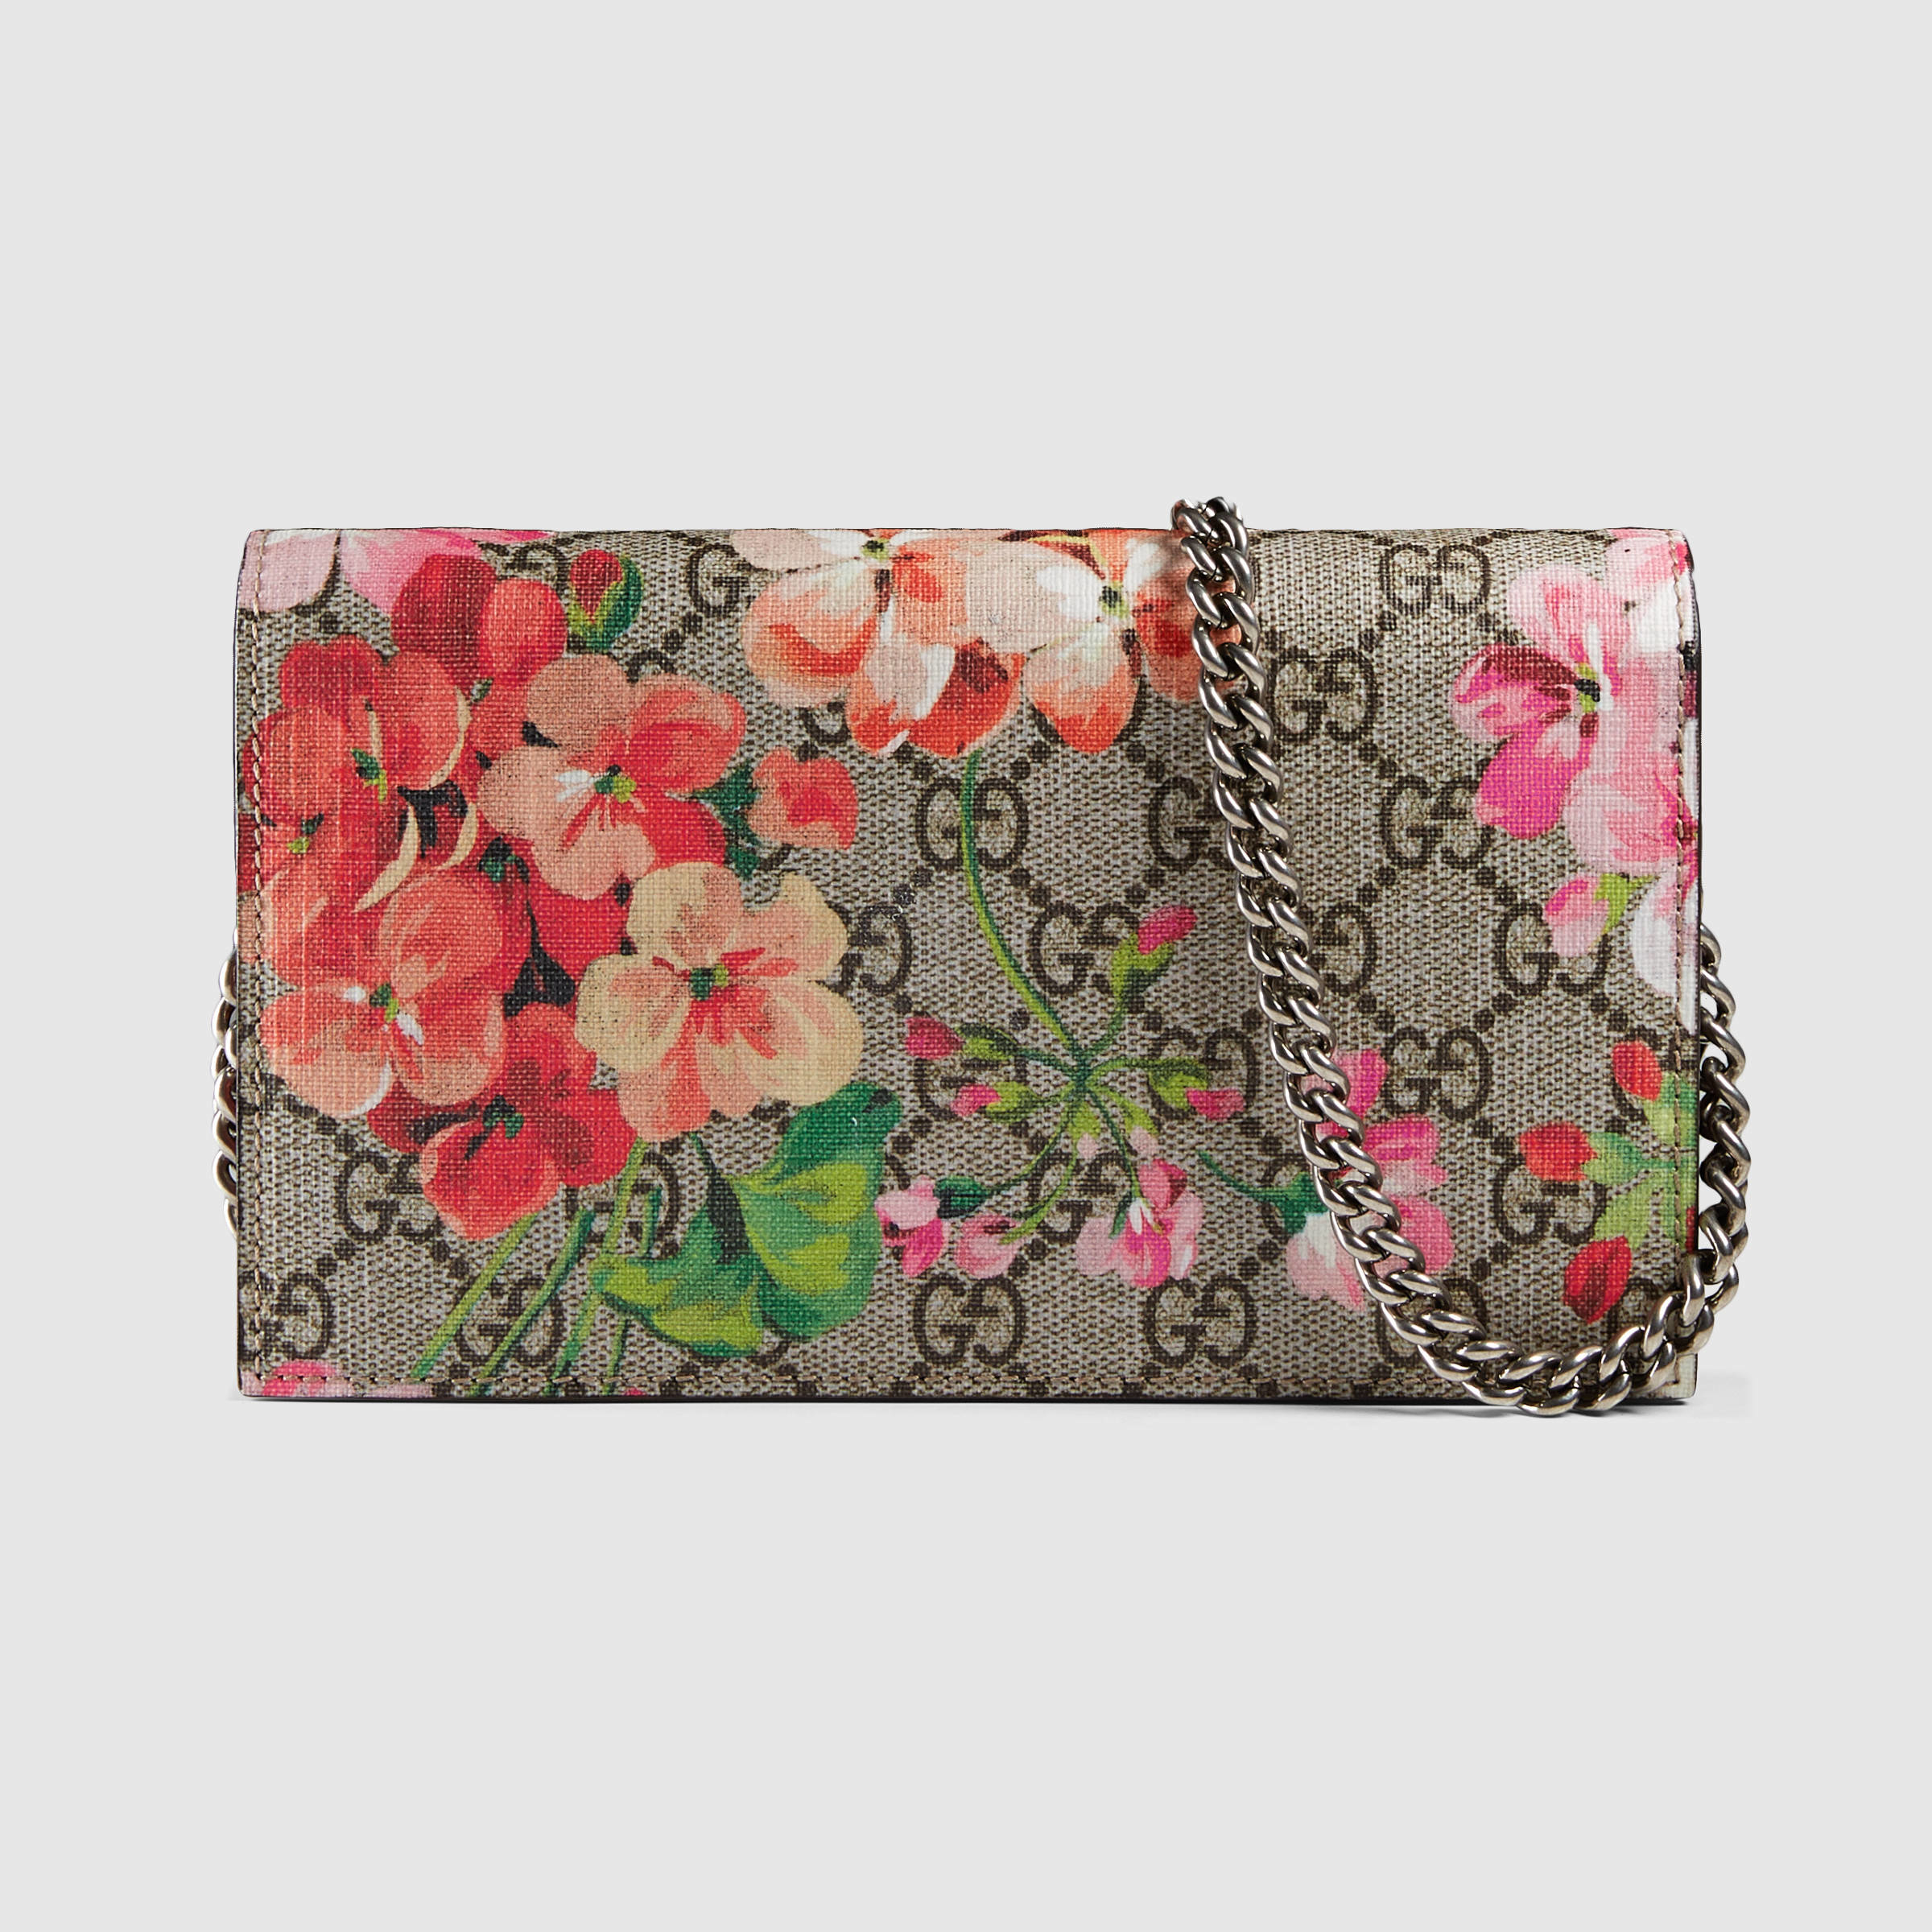 3bdc7cabb8f Gucci Gg Blooms Wallet On Chain - Best Photo Wallet Justiceforkenny.Org